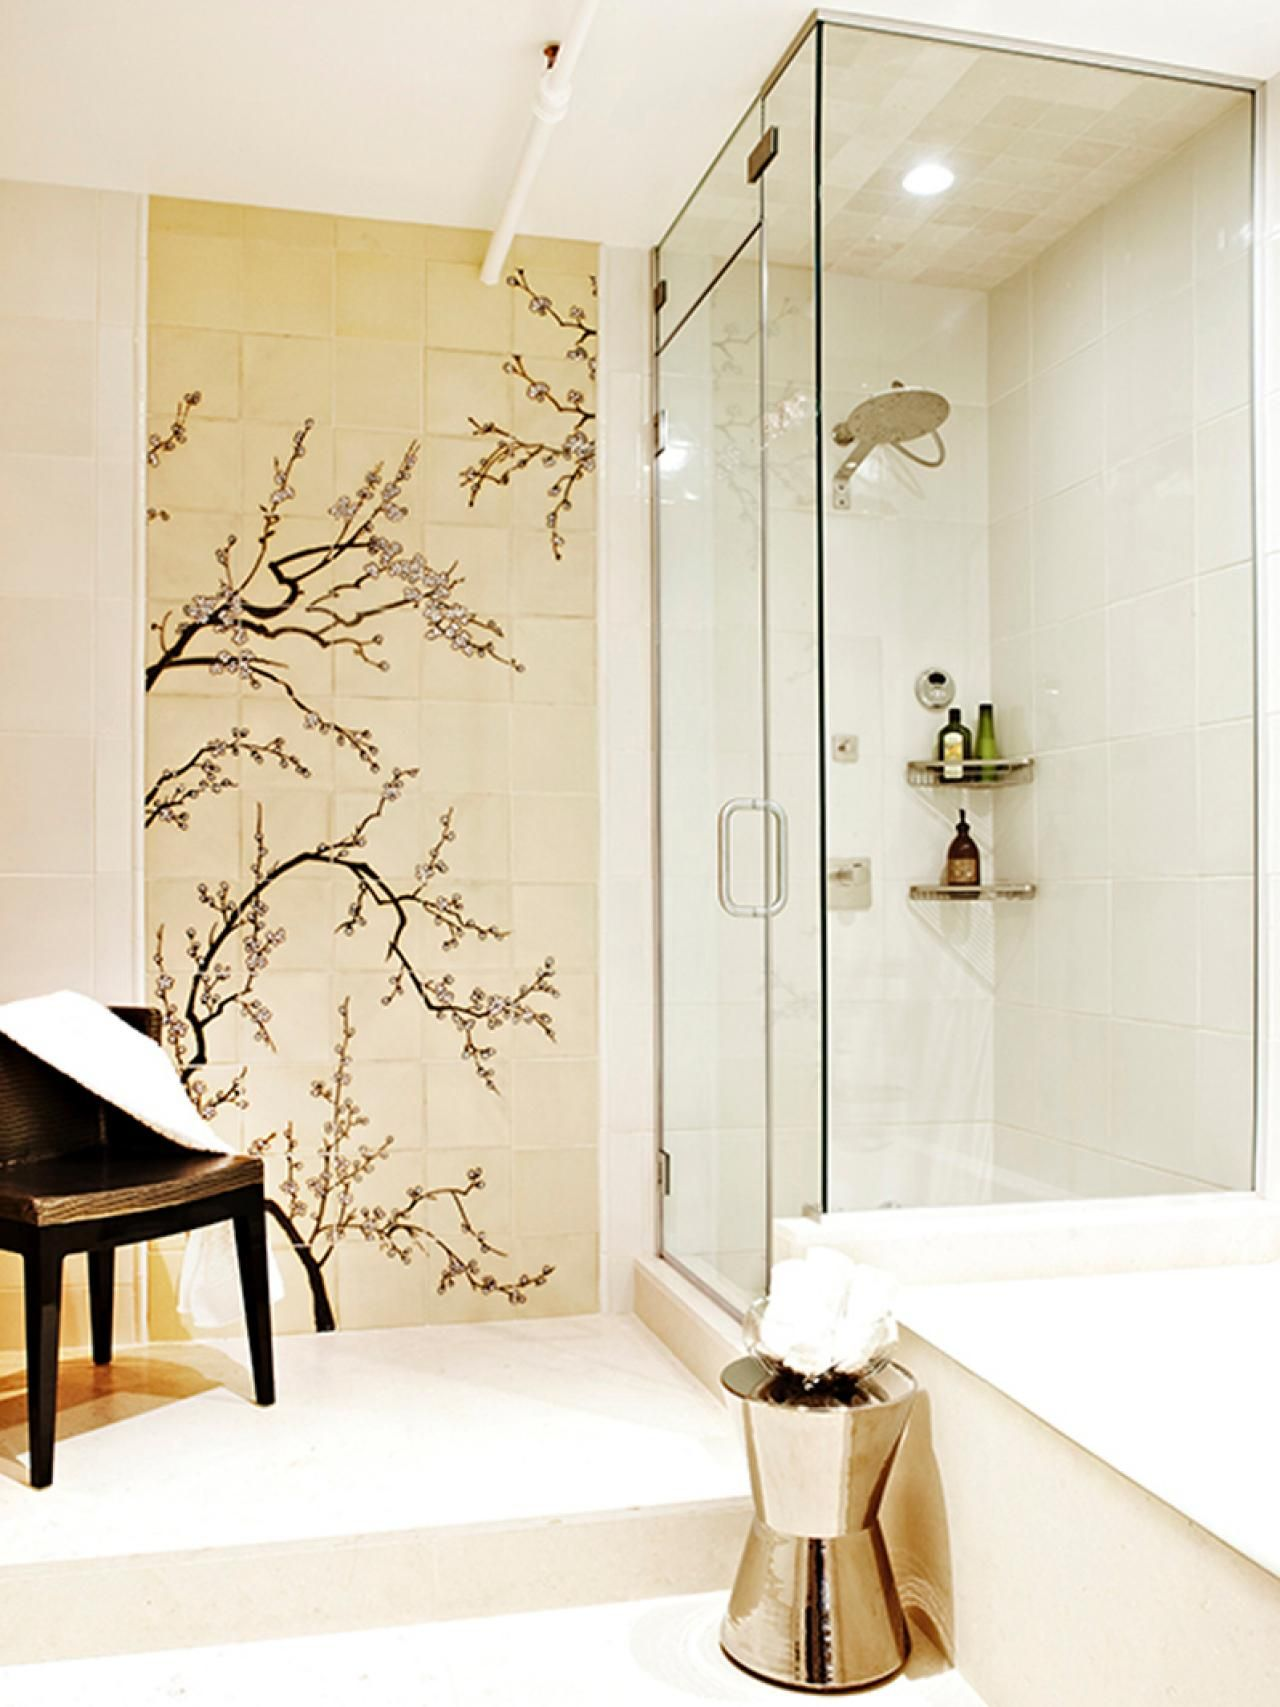 12 Designer Bathrooms for Less | Hgtv, Mosaics and Focal wall